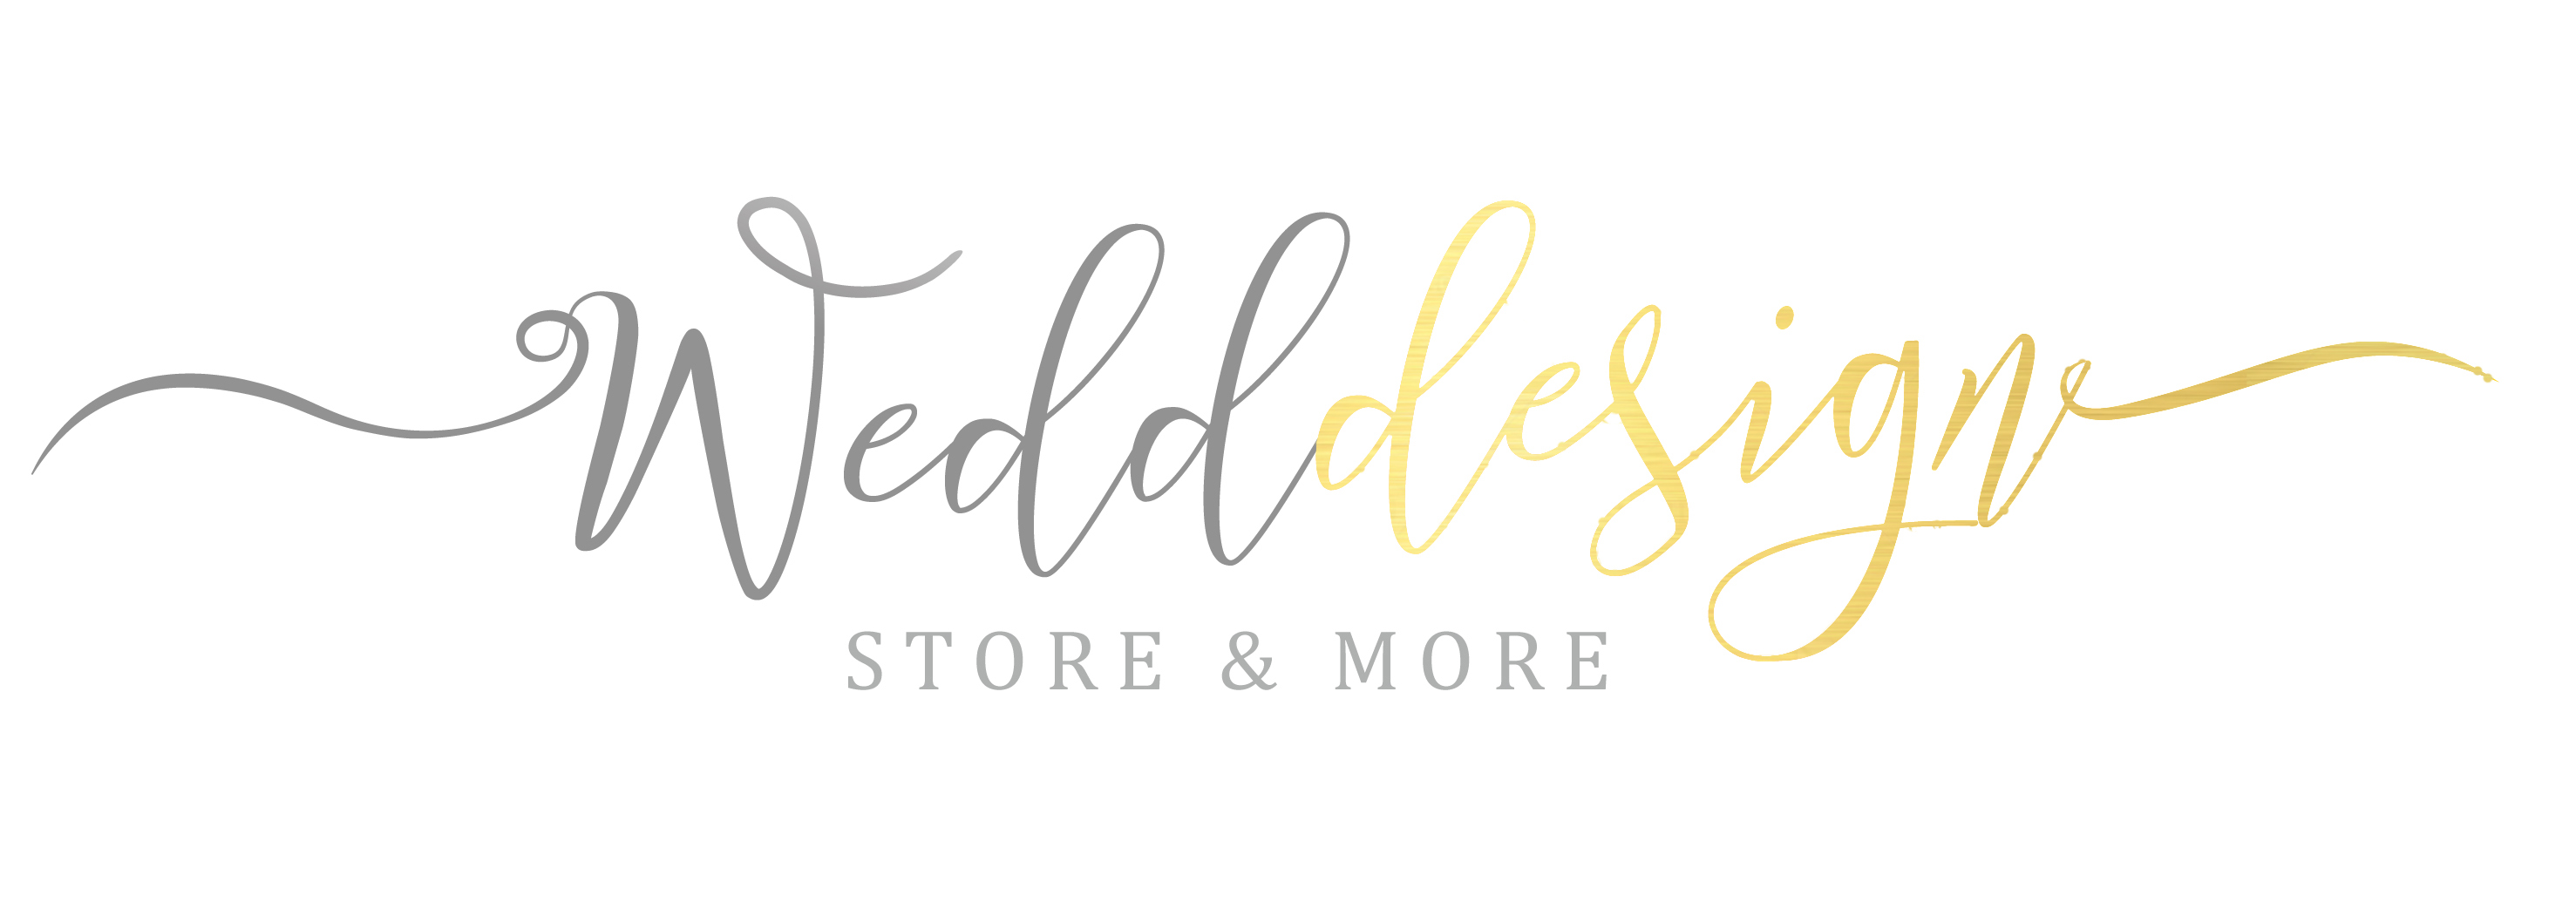 wedding design | wedding store | rental store